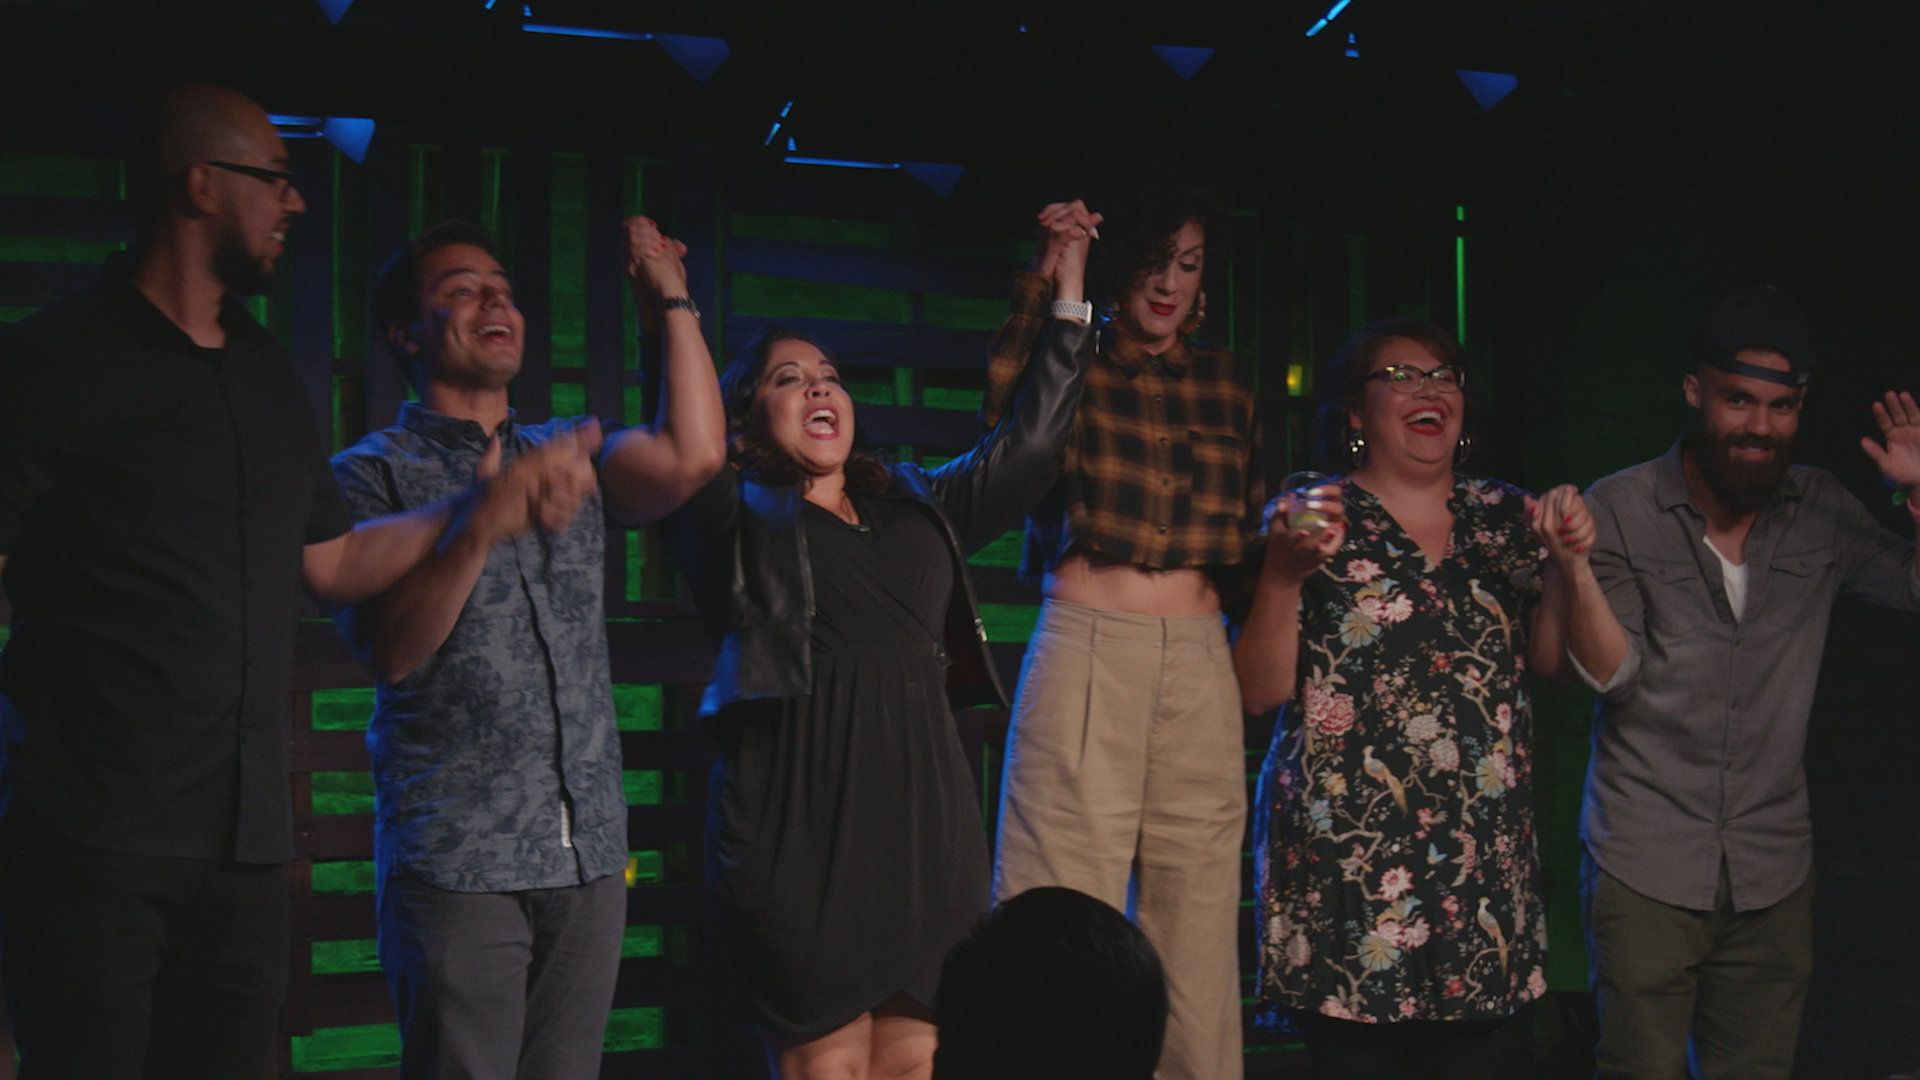 HuffPost and Mas Mejor teamed up to highlight an array of comedians from the LatinX community